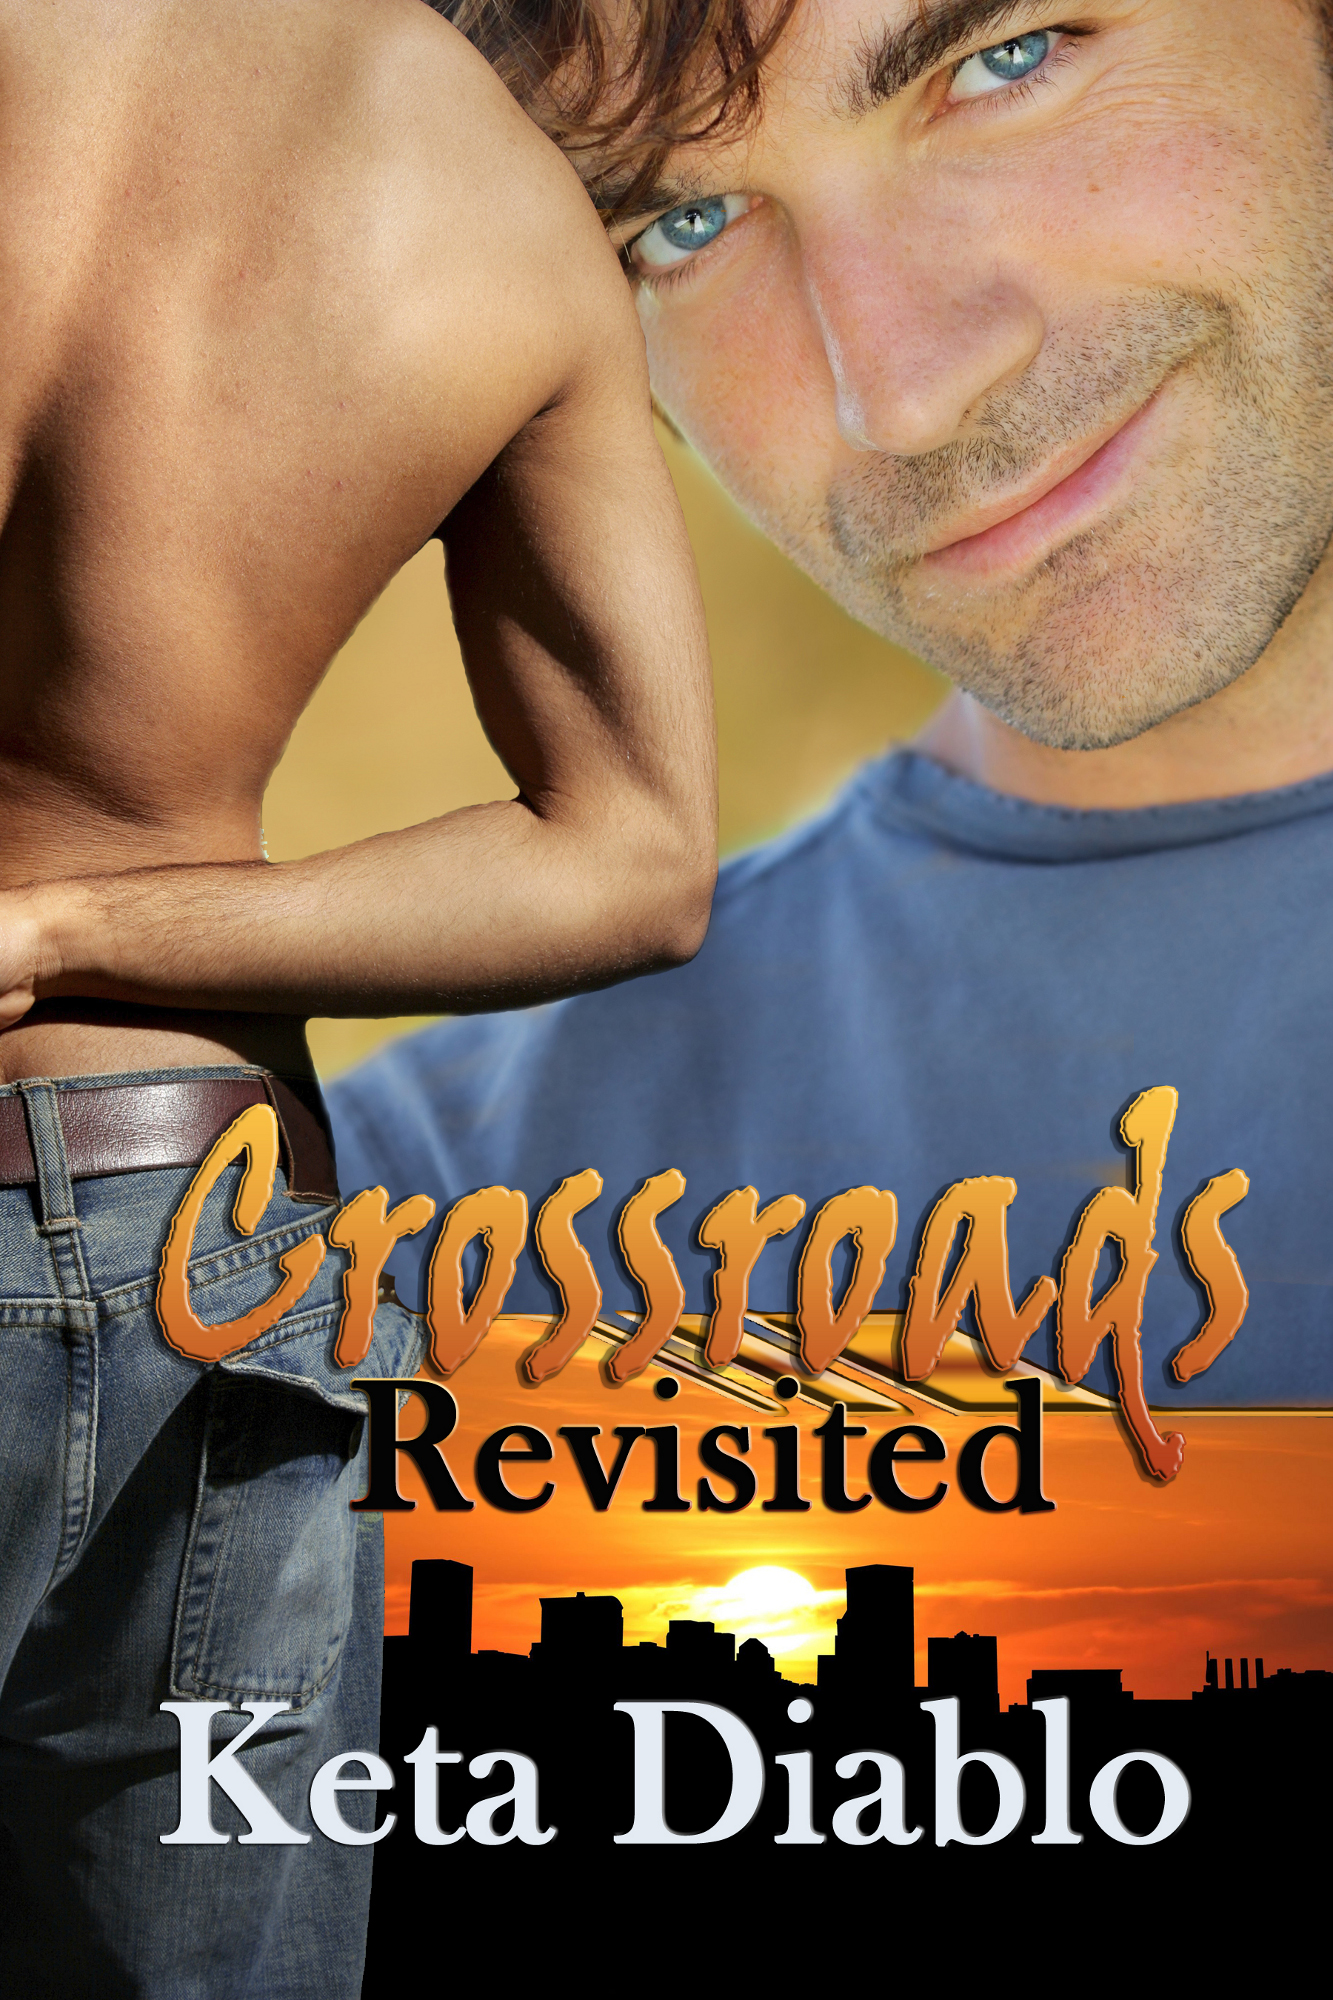 Crossroads: Revisited